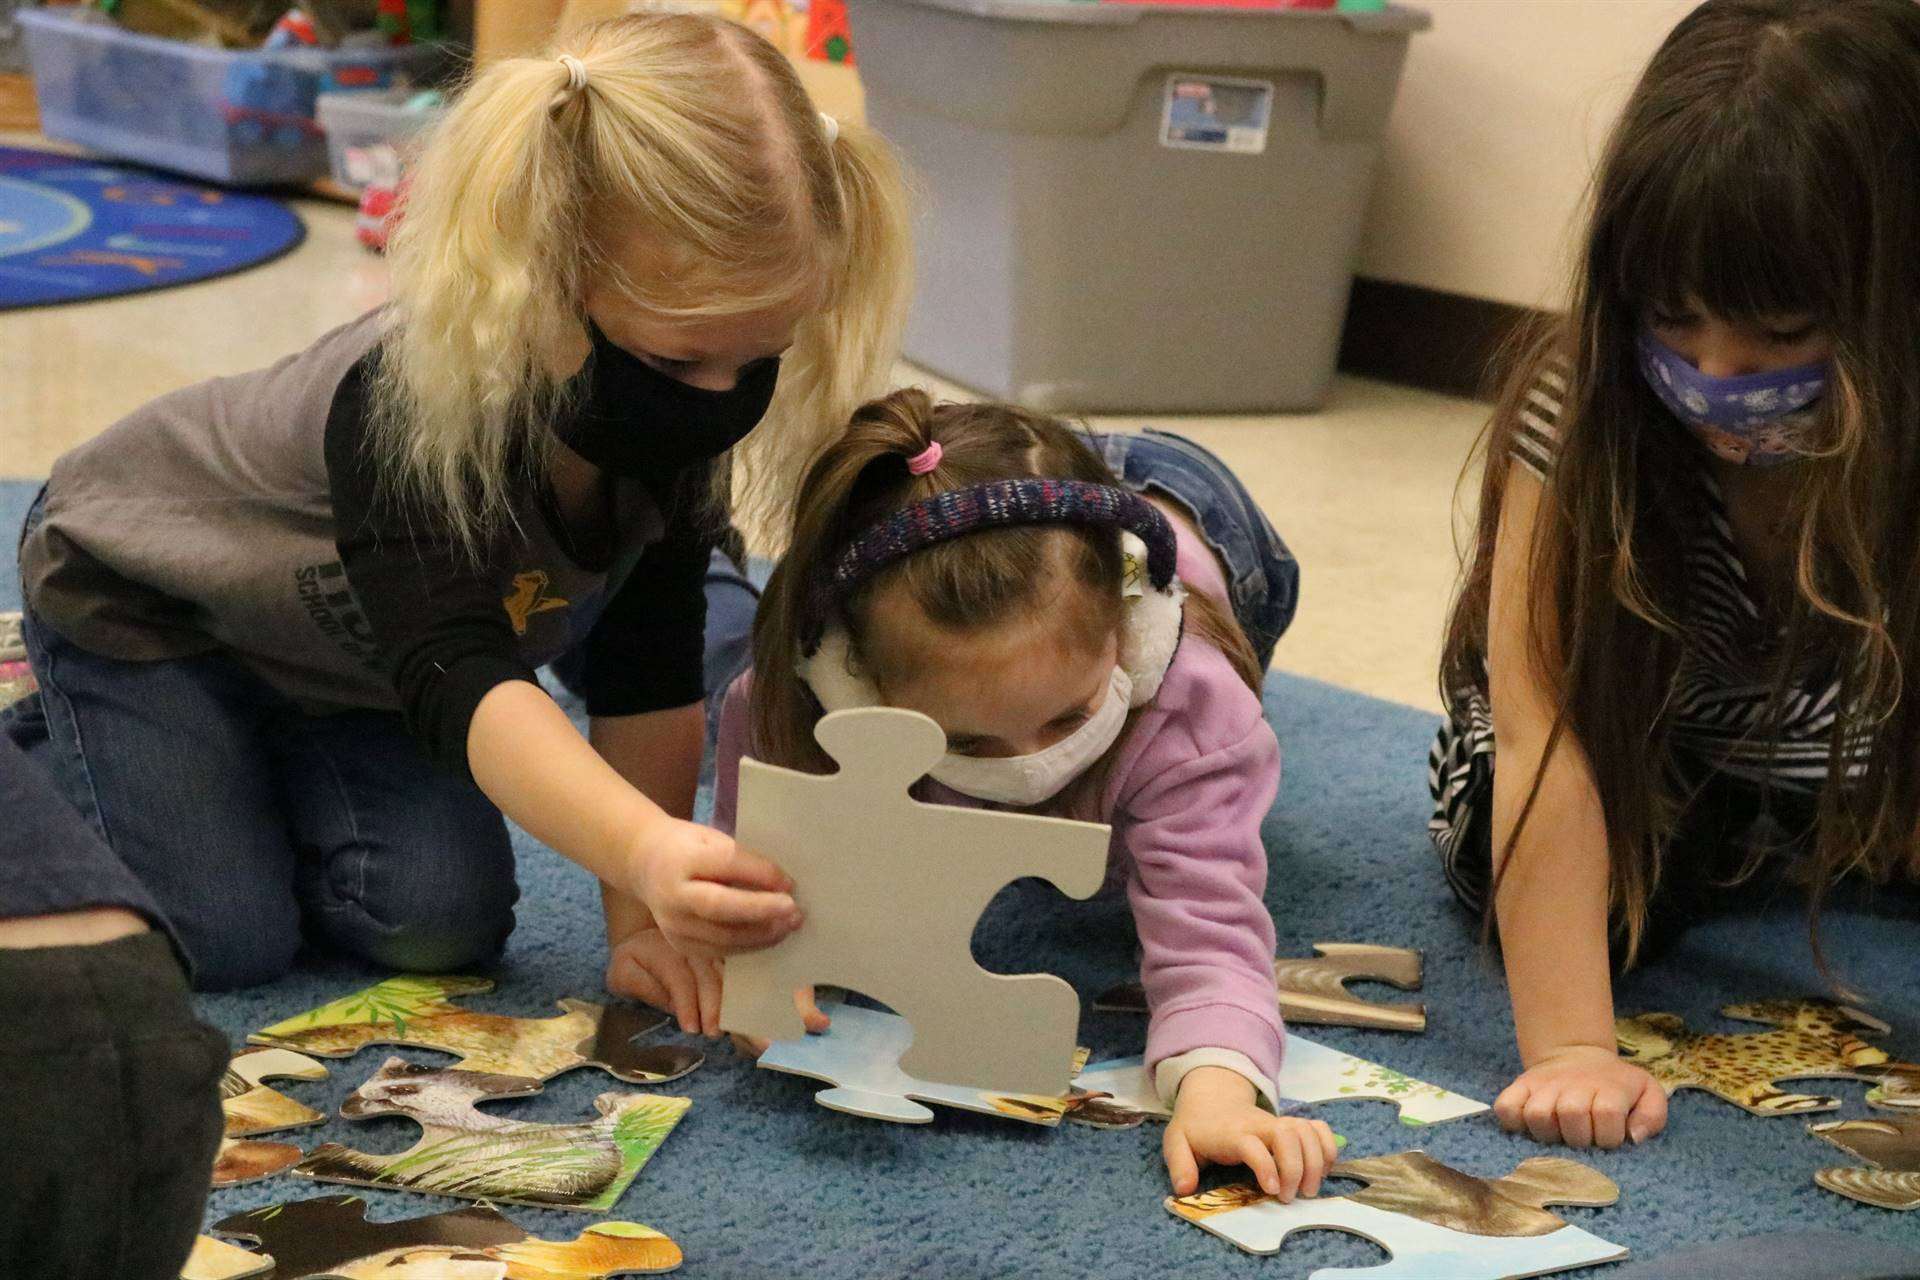 3 girls working on puzzle